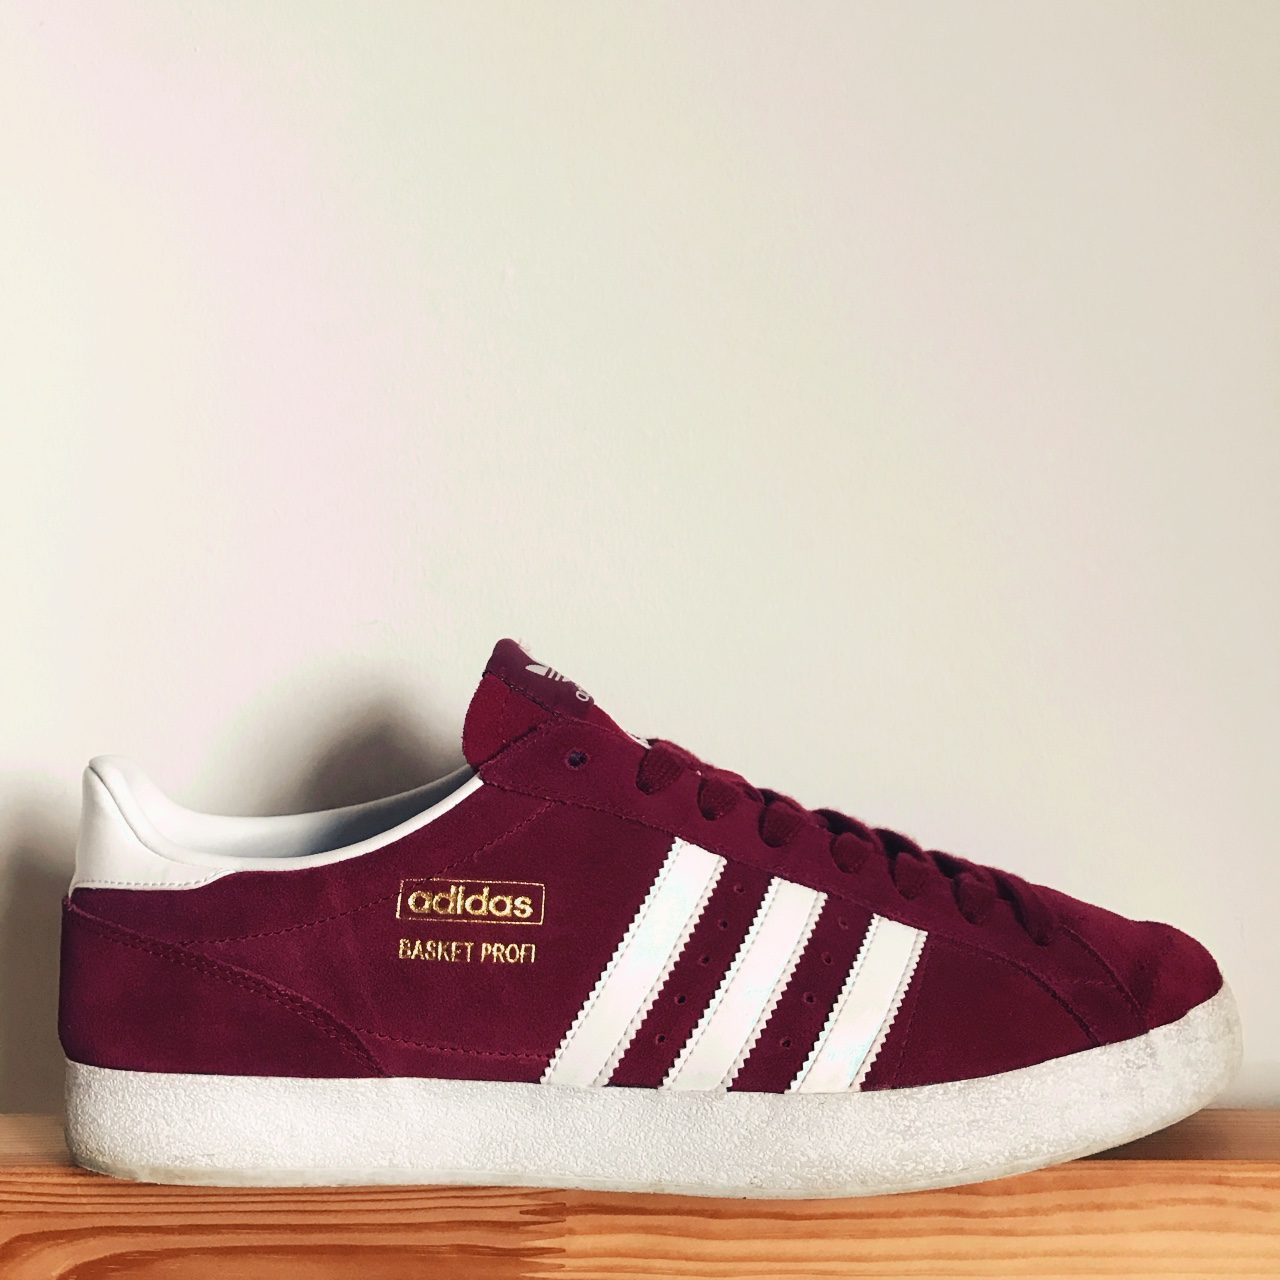 100% authentique 62dae eee66 Adidas Basket Profi. Burgundy with white stripes and... - Depop